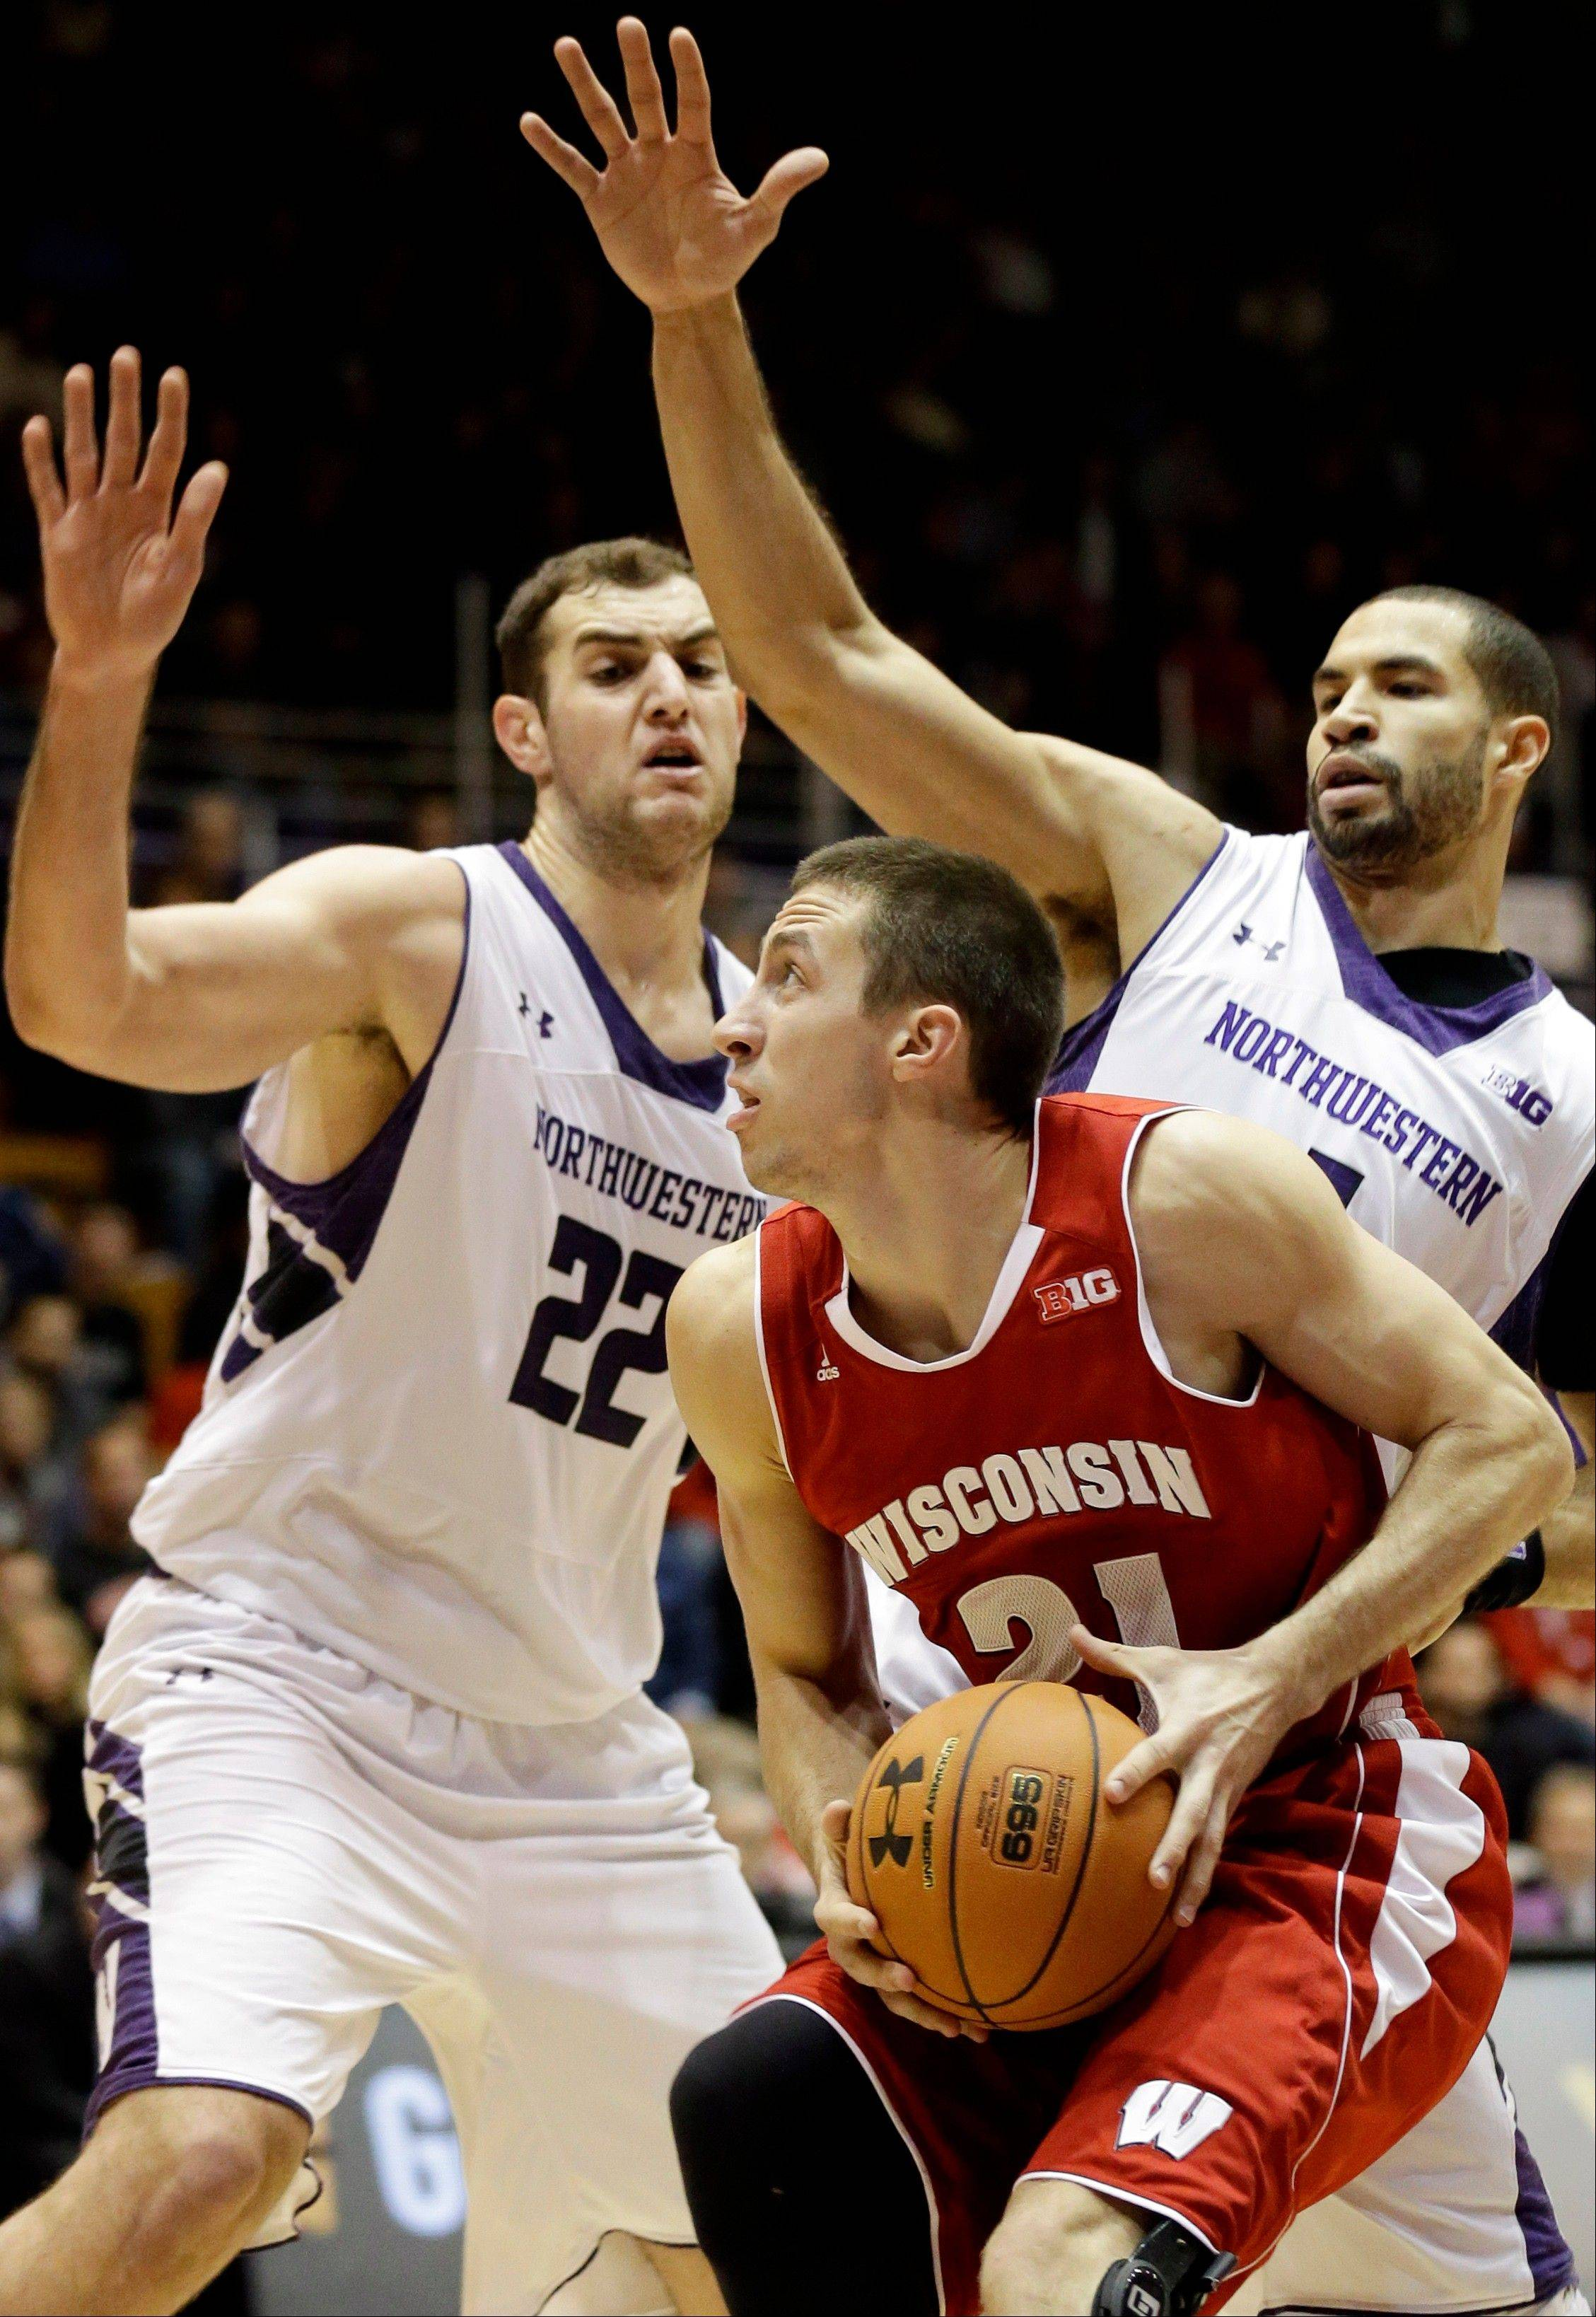 Wisconsin's Josh Gasser (21) looks to the basket as Northwestern center Alex Olah (22) and guard Drew Crawford, left, defend during the first half of an NCAA college basketball game in Evanston, Ill., on Thursday, Jan. 2, 2014.